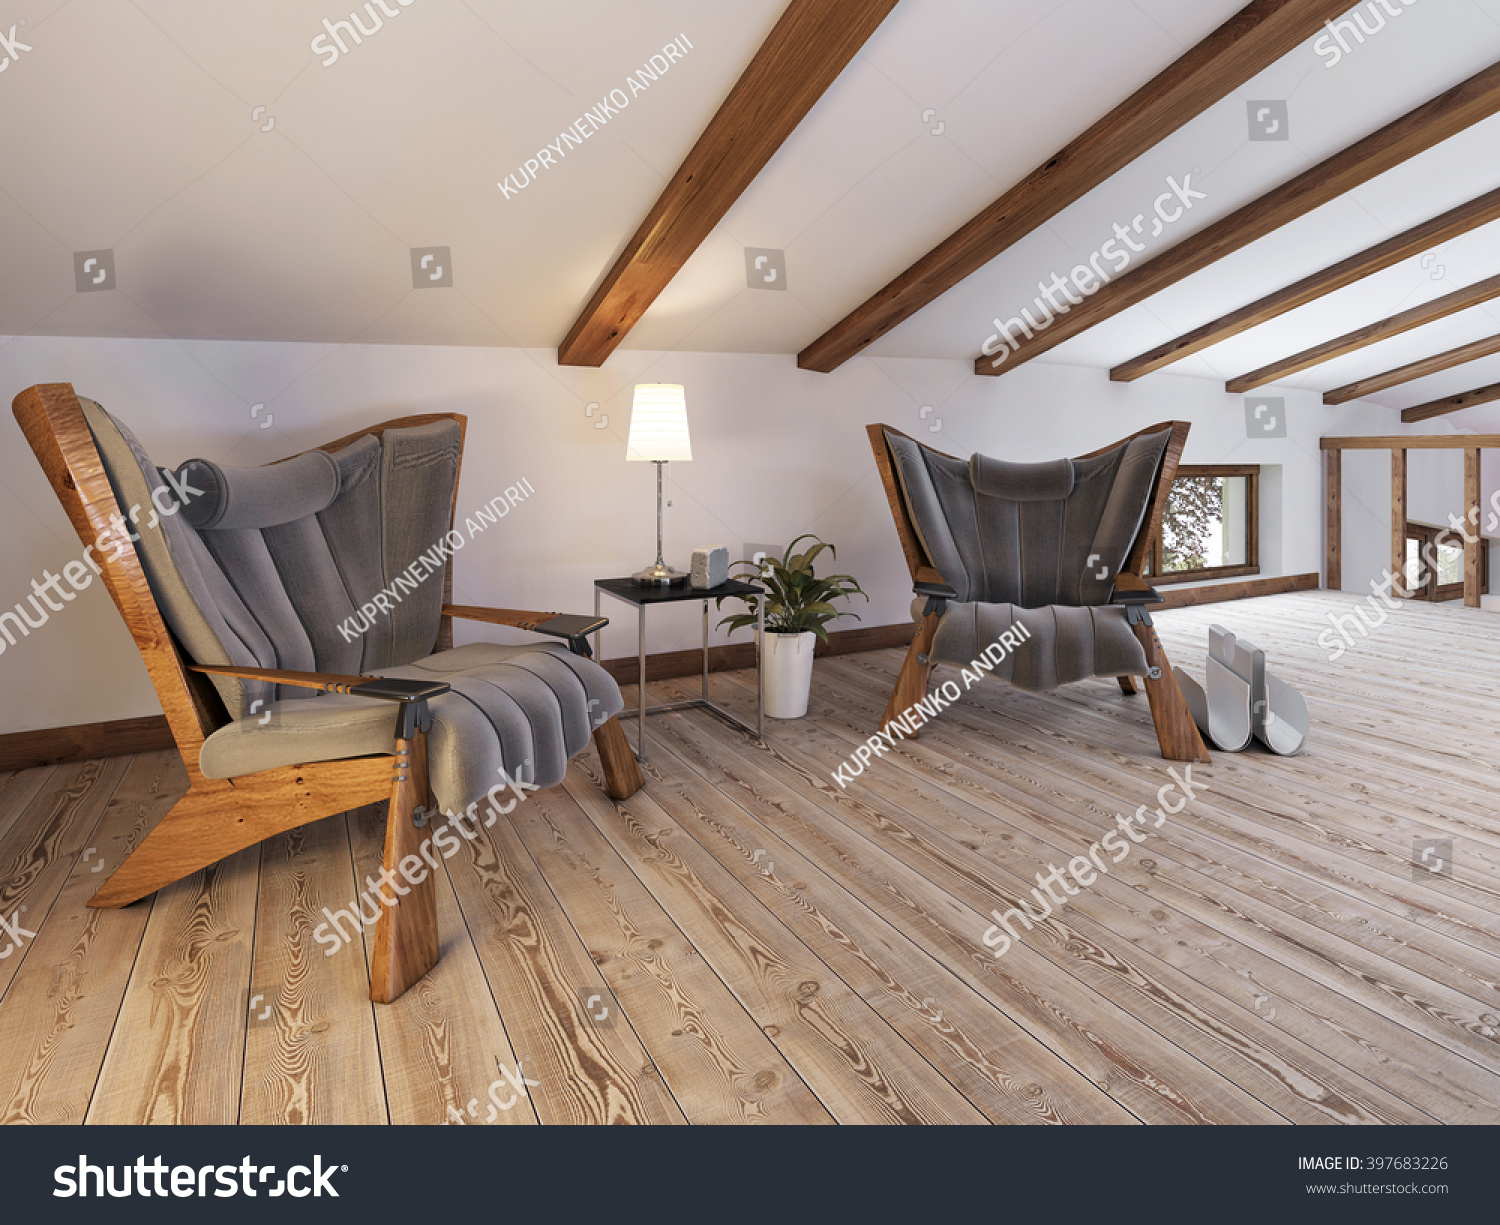 The Attic Floor With A Seating Area With Designer Chairs And A Low Table  Lamp In